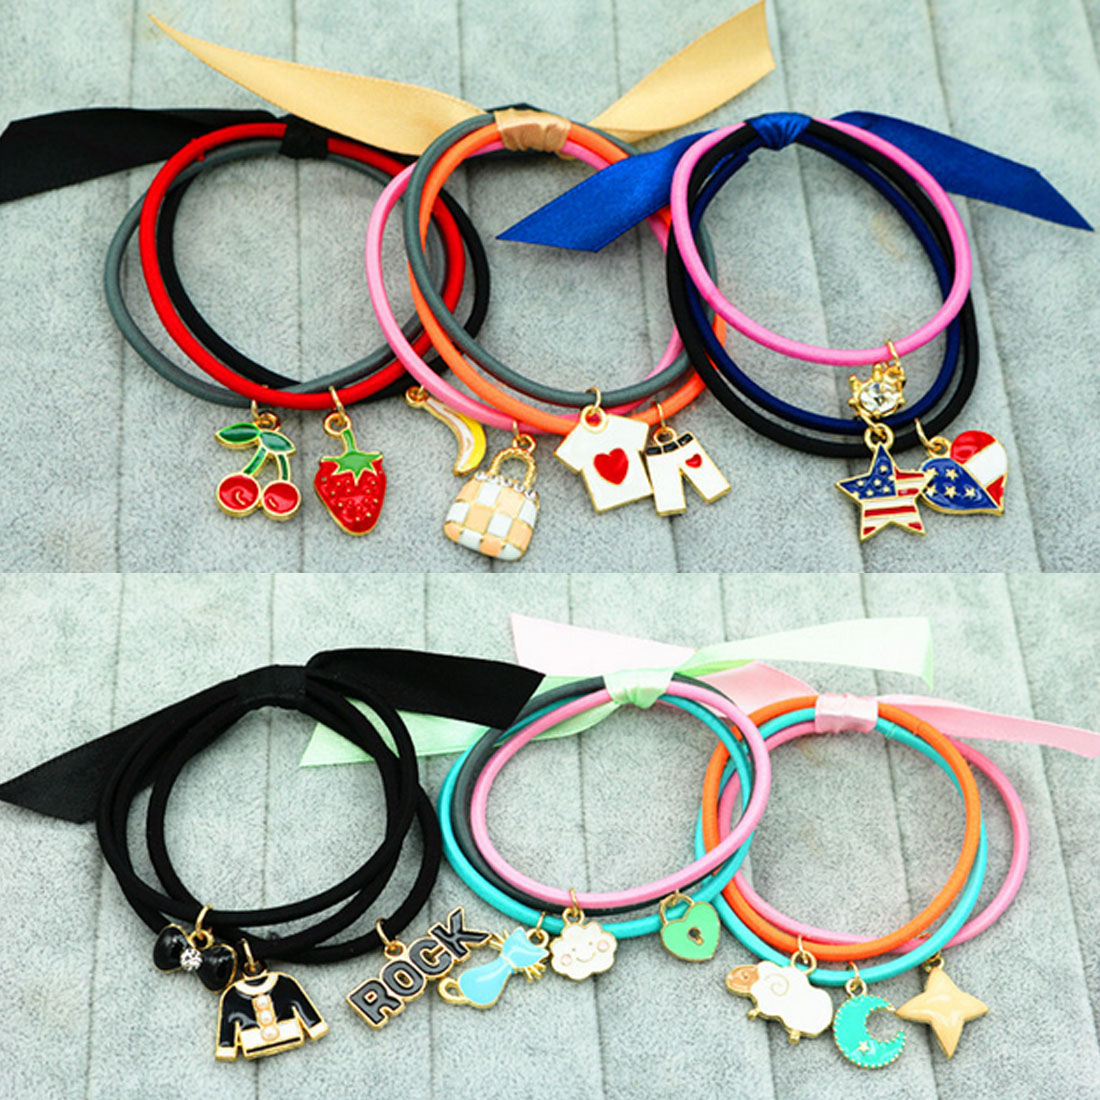 1Pack 3Pcs Charming Bow Elastic Rubber Bands Girl Cute Candy Color Headwear Ribbon Women Hair Accessories Cat Star Pattern in Women 39 s Hair Accessories from Apparel Accessories